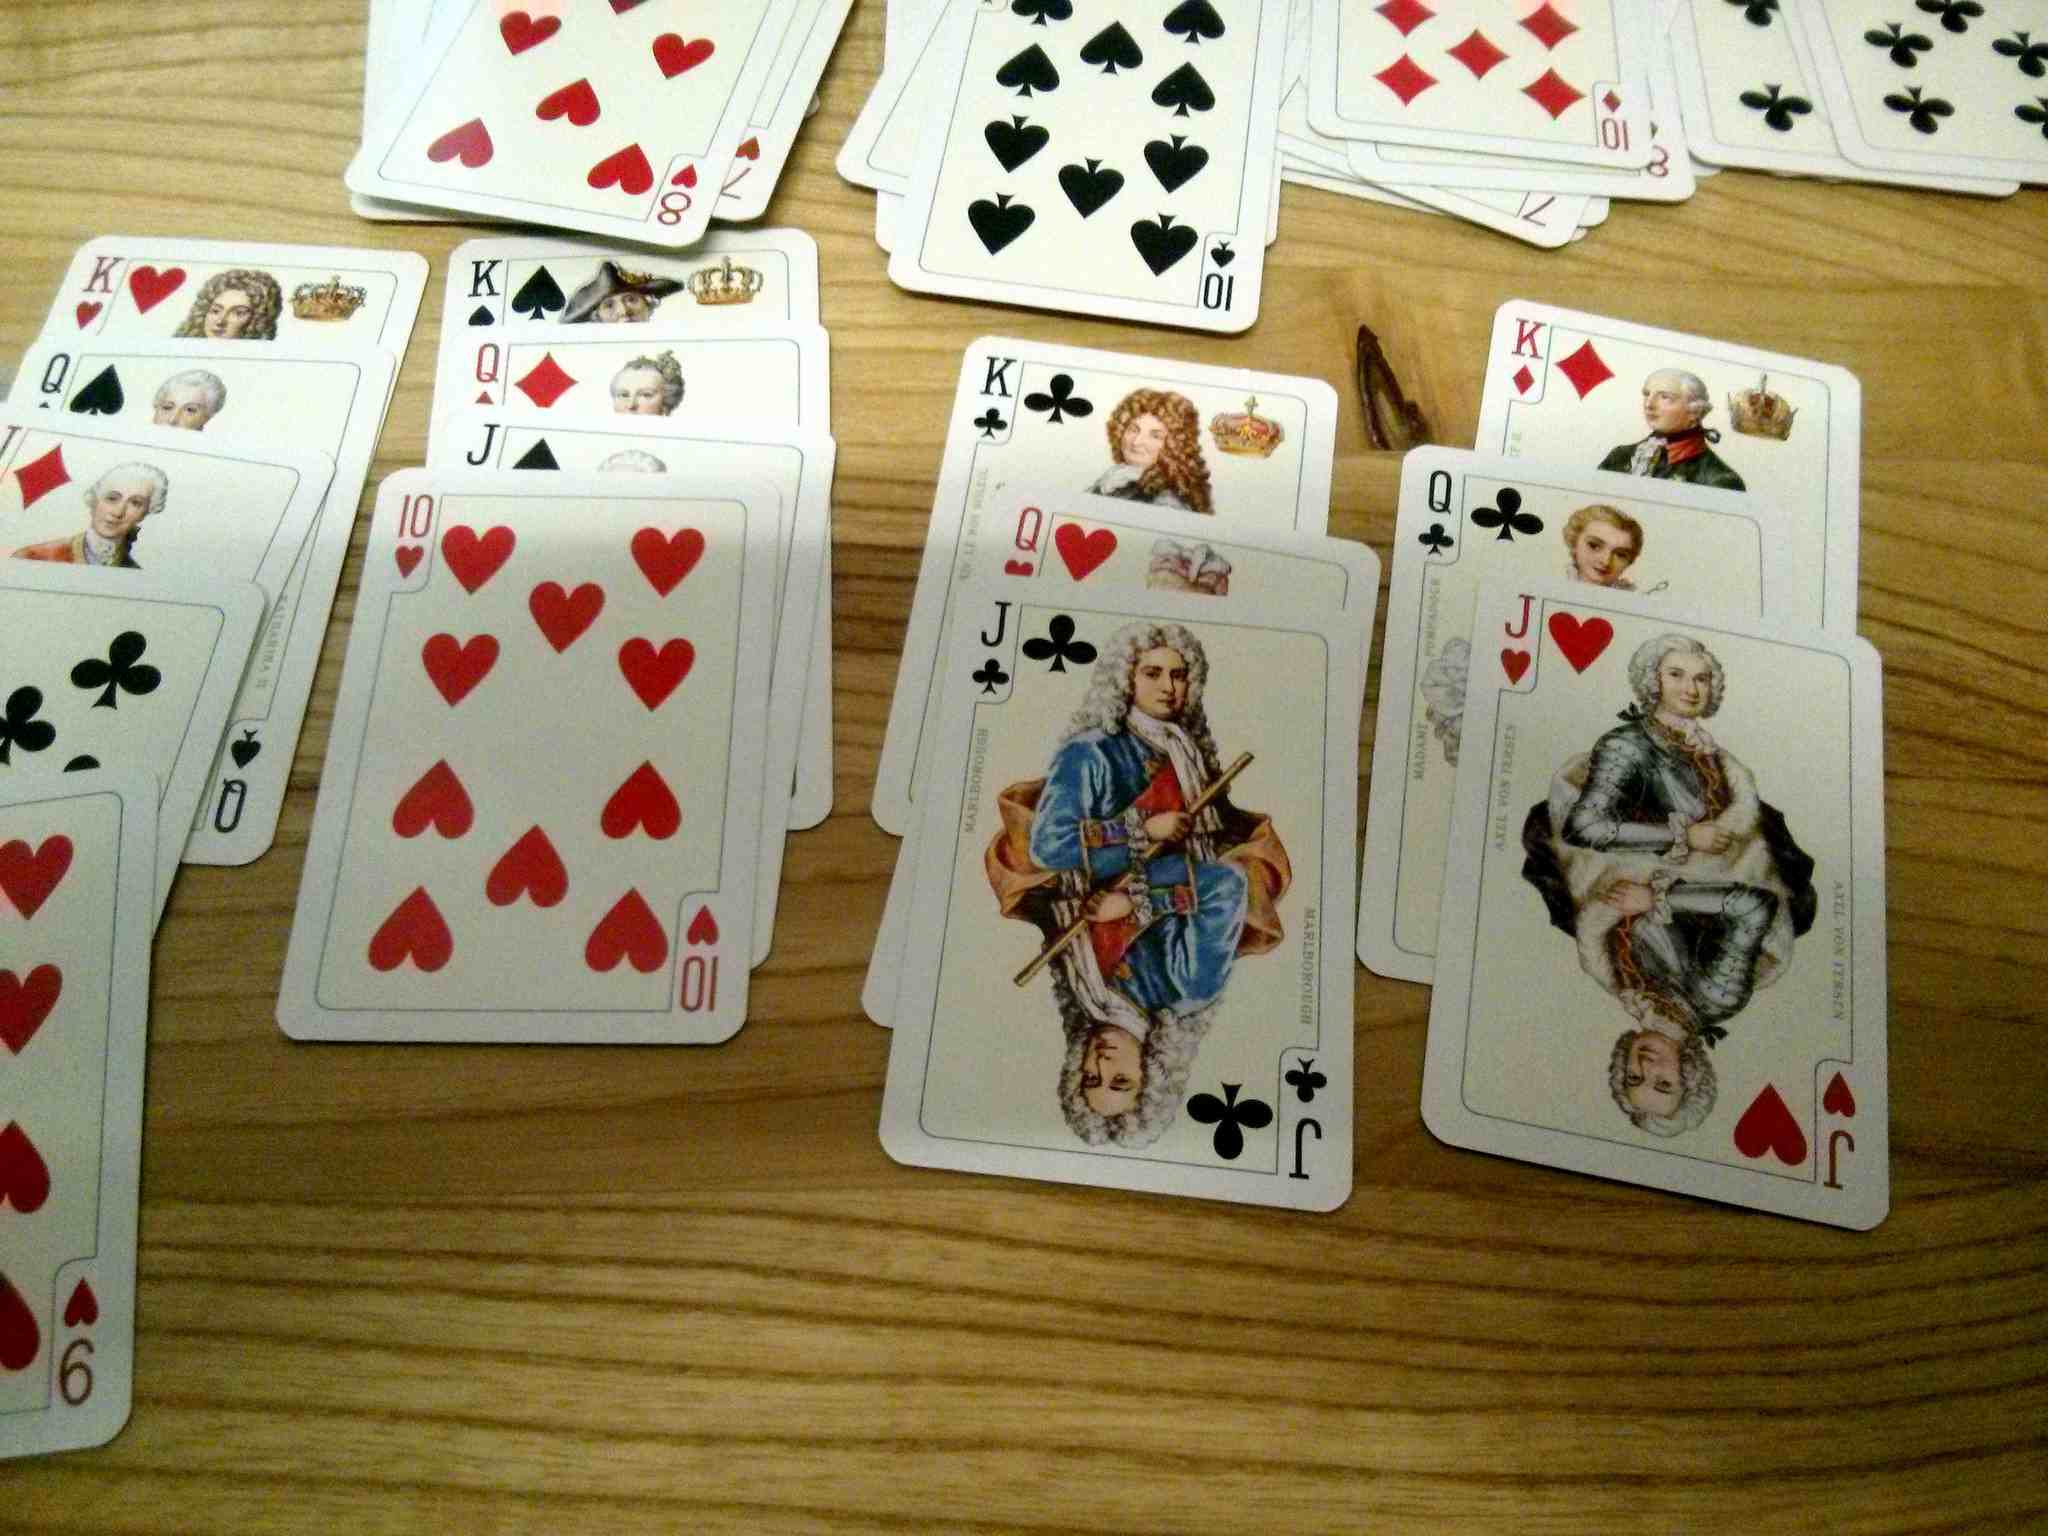 Single solitary game  Klondike Solitaire, Turn One  2019-07-27